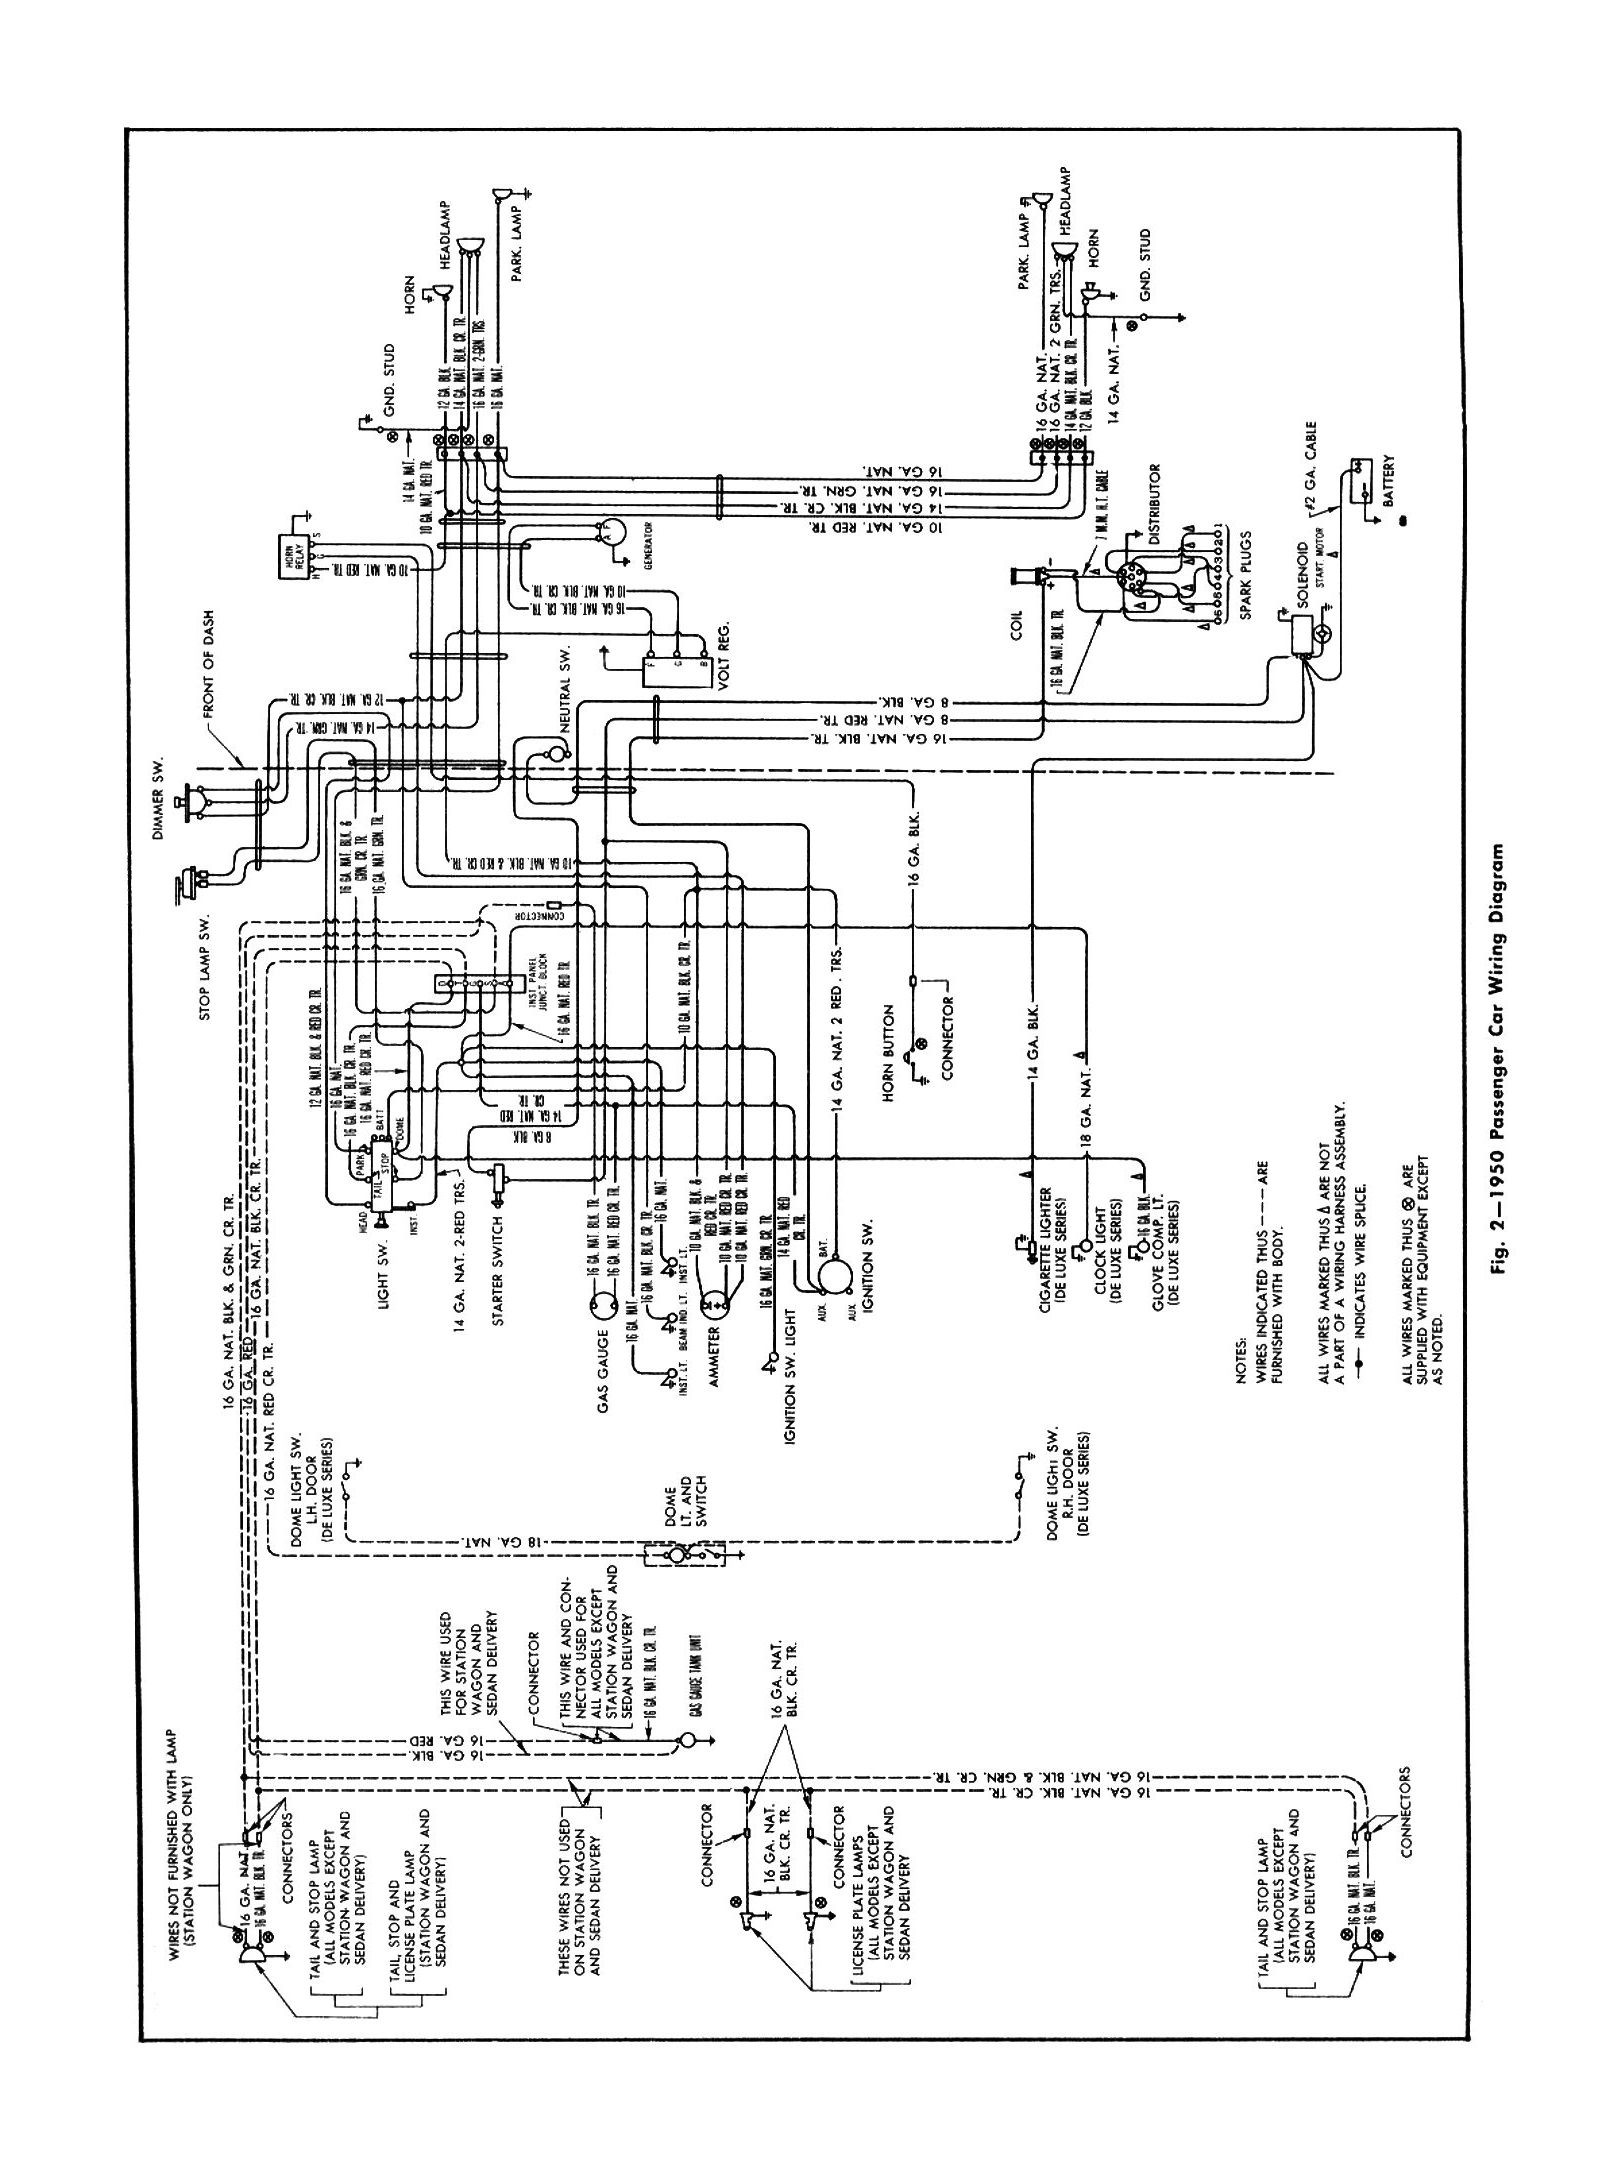 chevy wiring diagrams rh chevy oldcarmanualproject com 1950 chevy deluxe wiring diagram 1950 chevy car wiring diagram